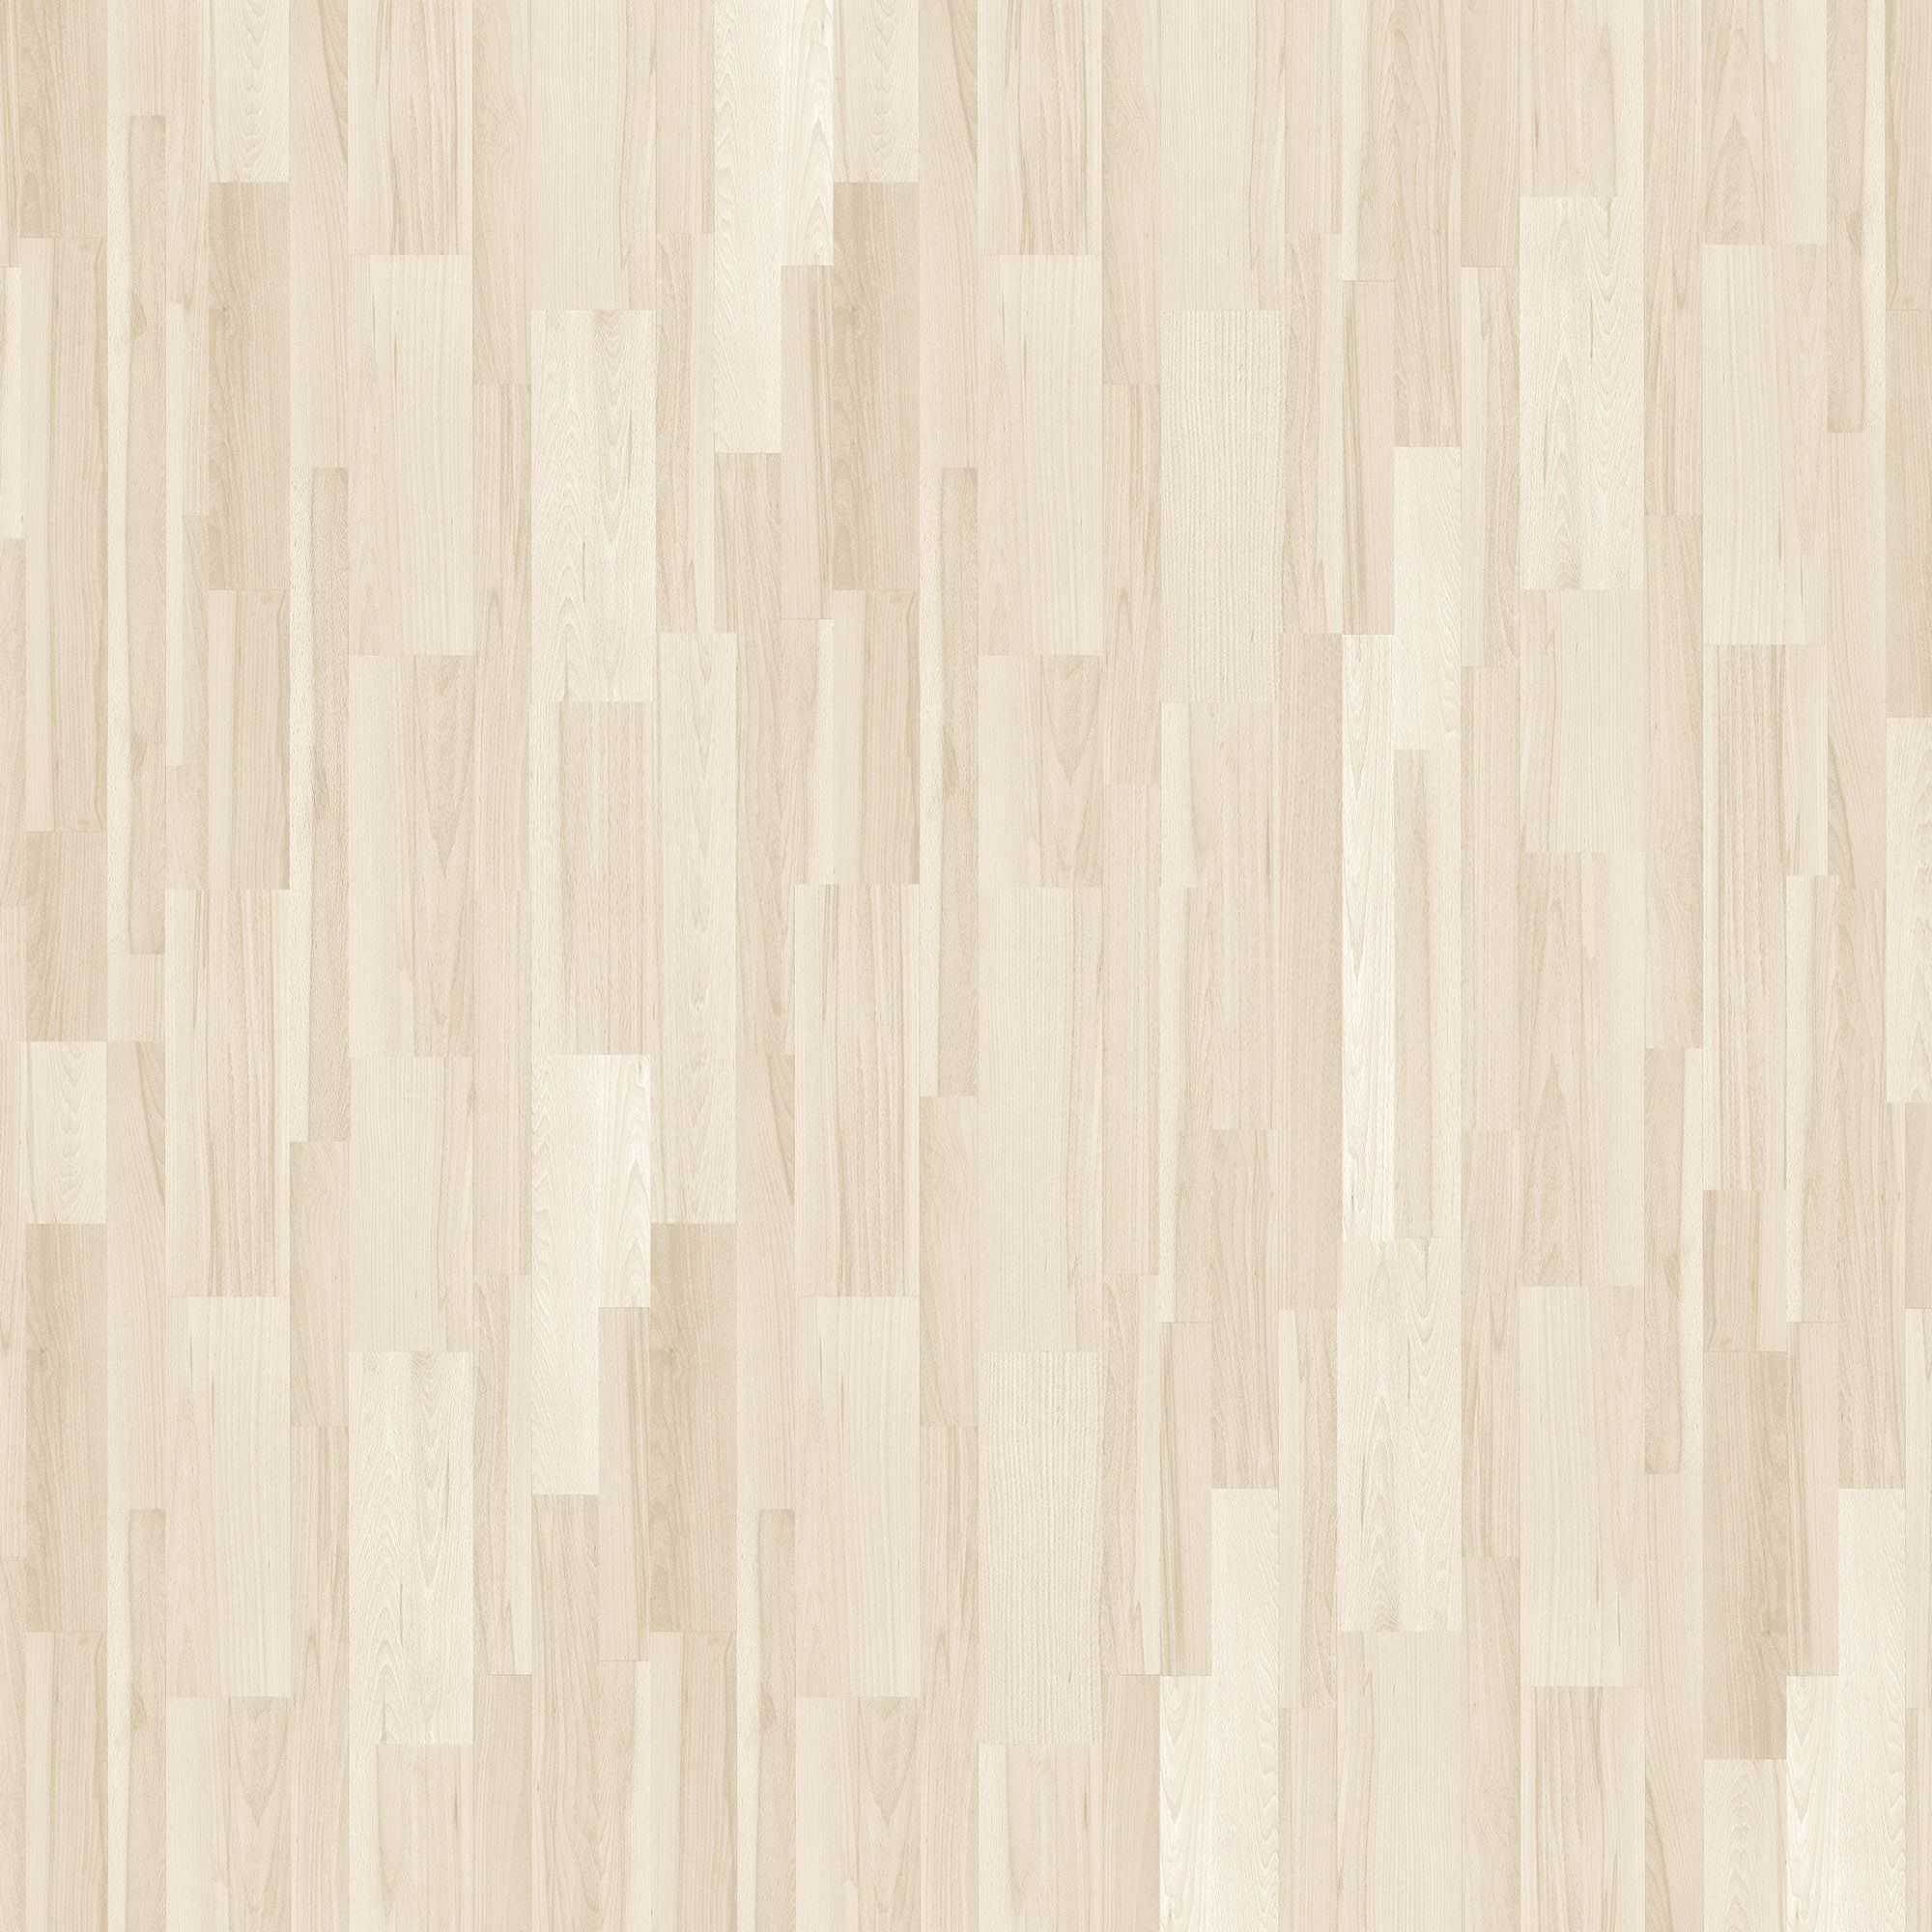 light wood floor texture.  Texture Image Result For Wall Colors To Match Light Wood Floors Intended Light Wood Floor Texture X